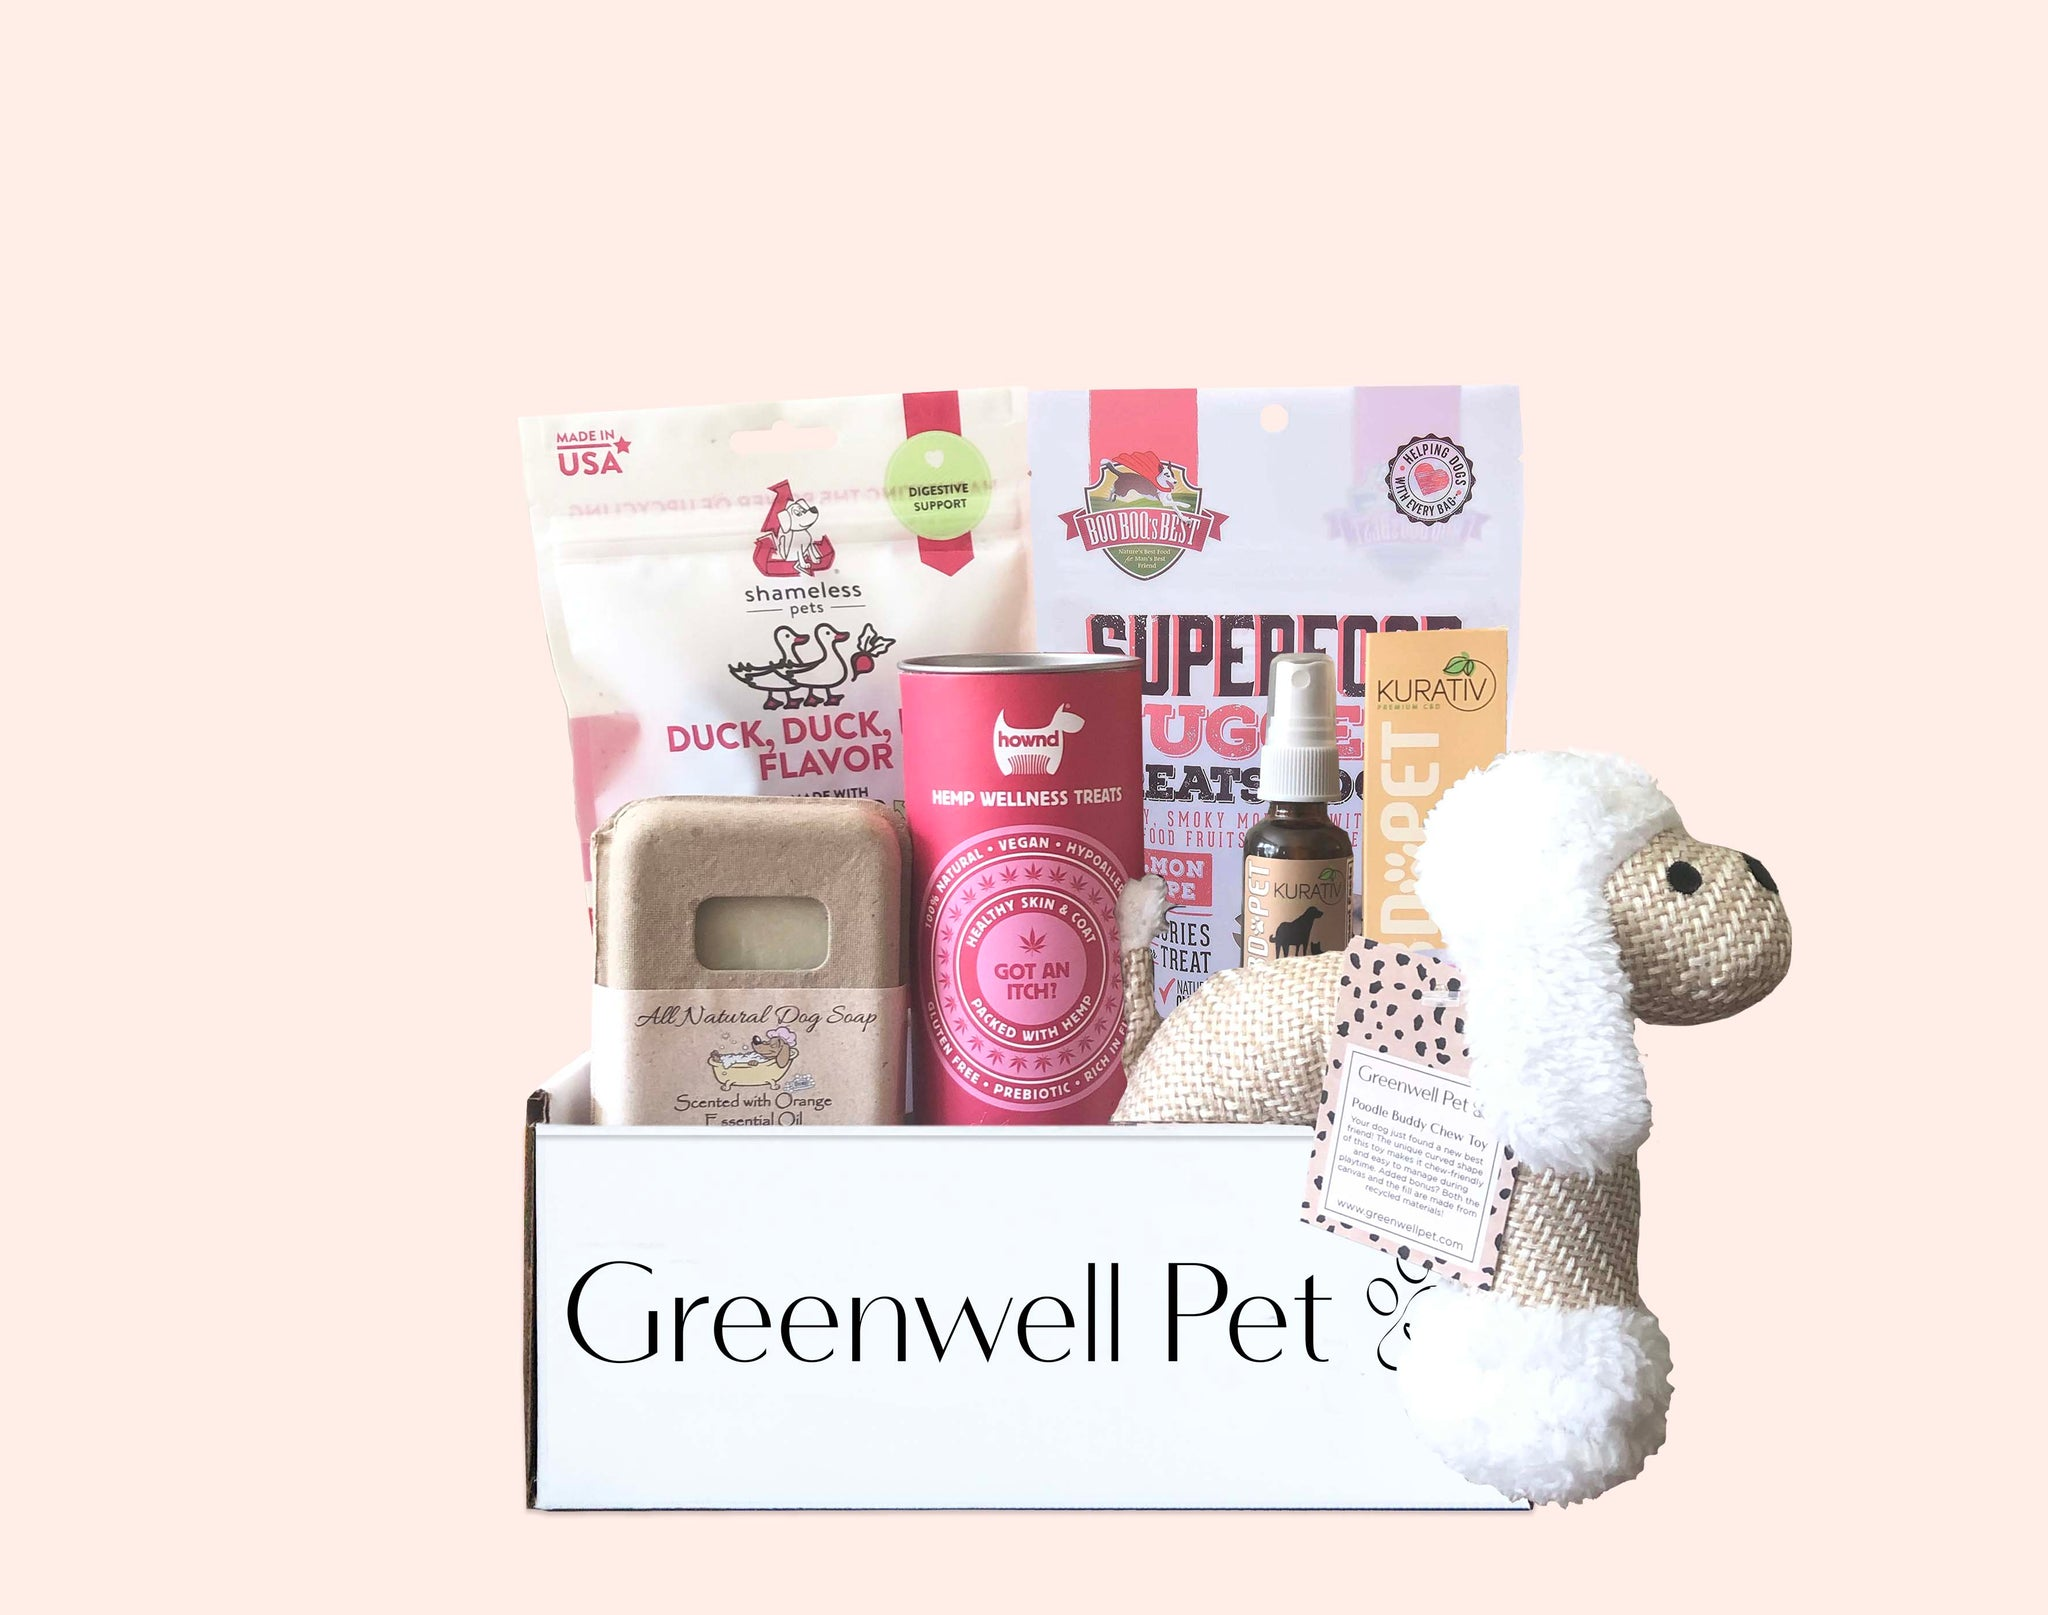 September Greenwell Pet Box